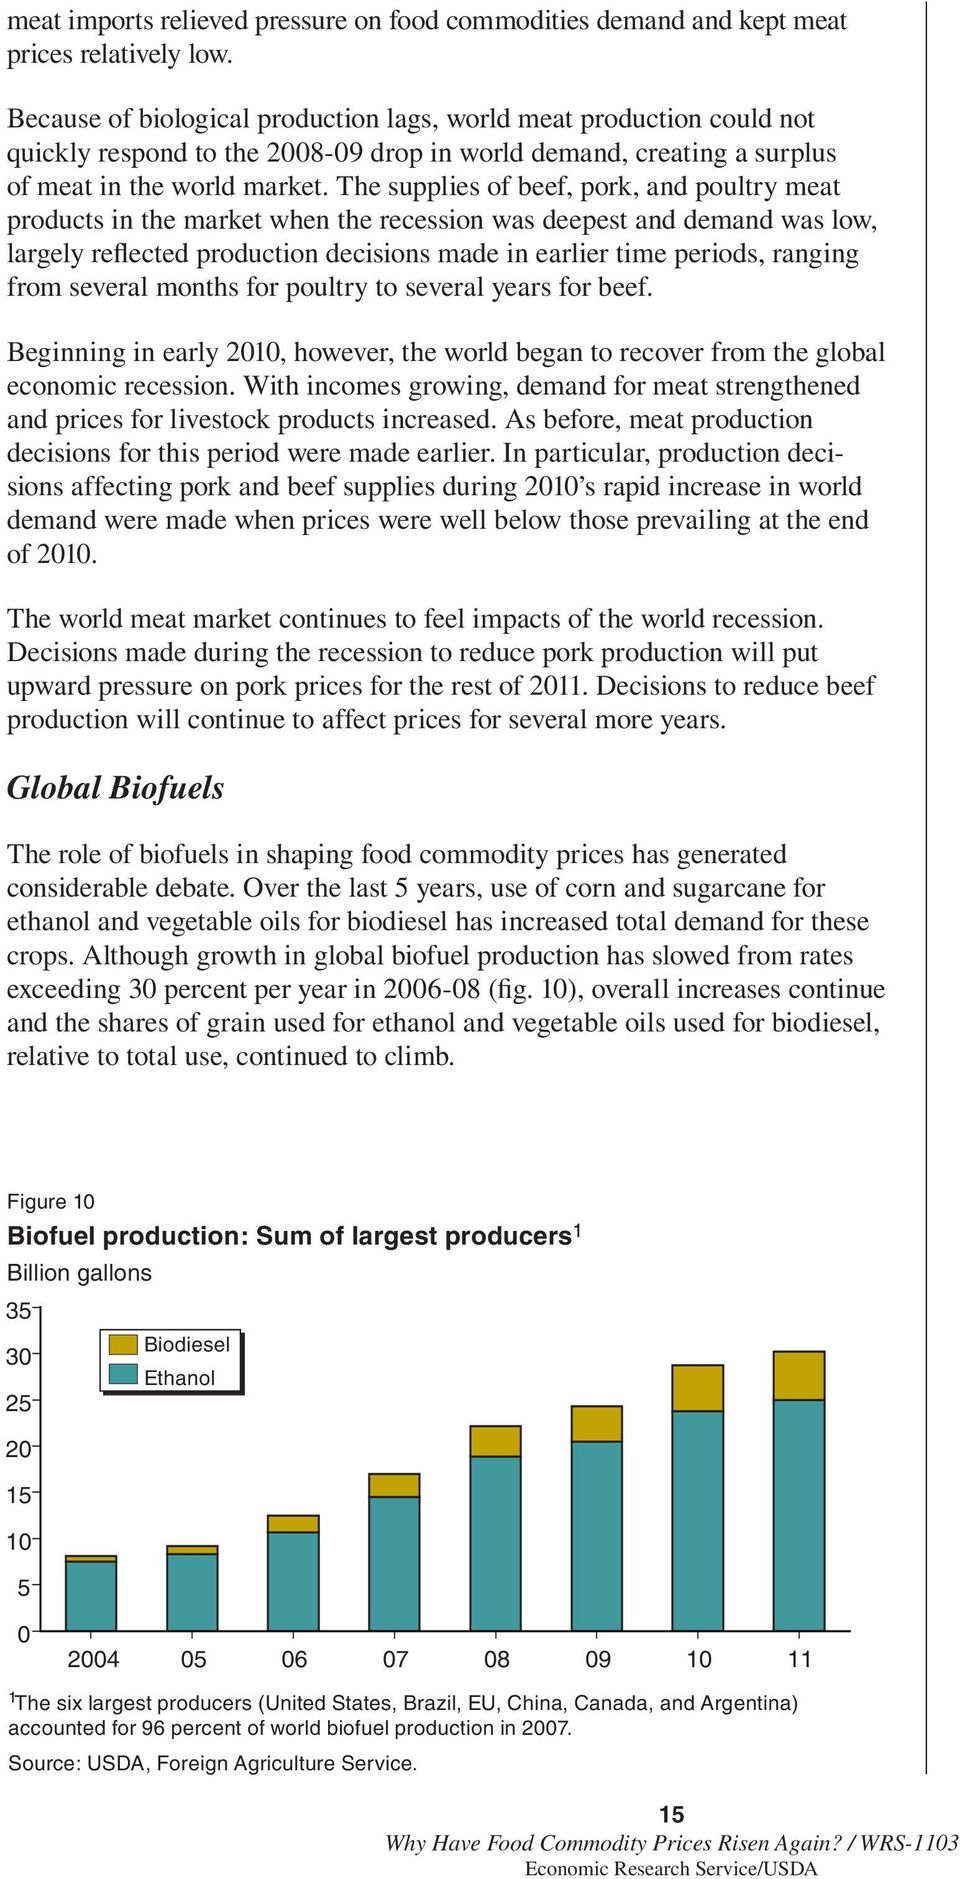 The supplies of beef, pork, and poultry meat products in the market when the recession was deepest and demand was low, largely reflected production decisions made in earlier time periods, ranging